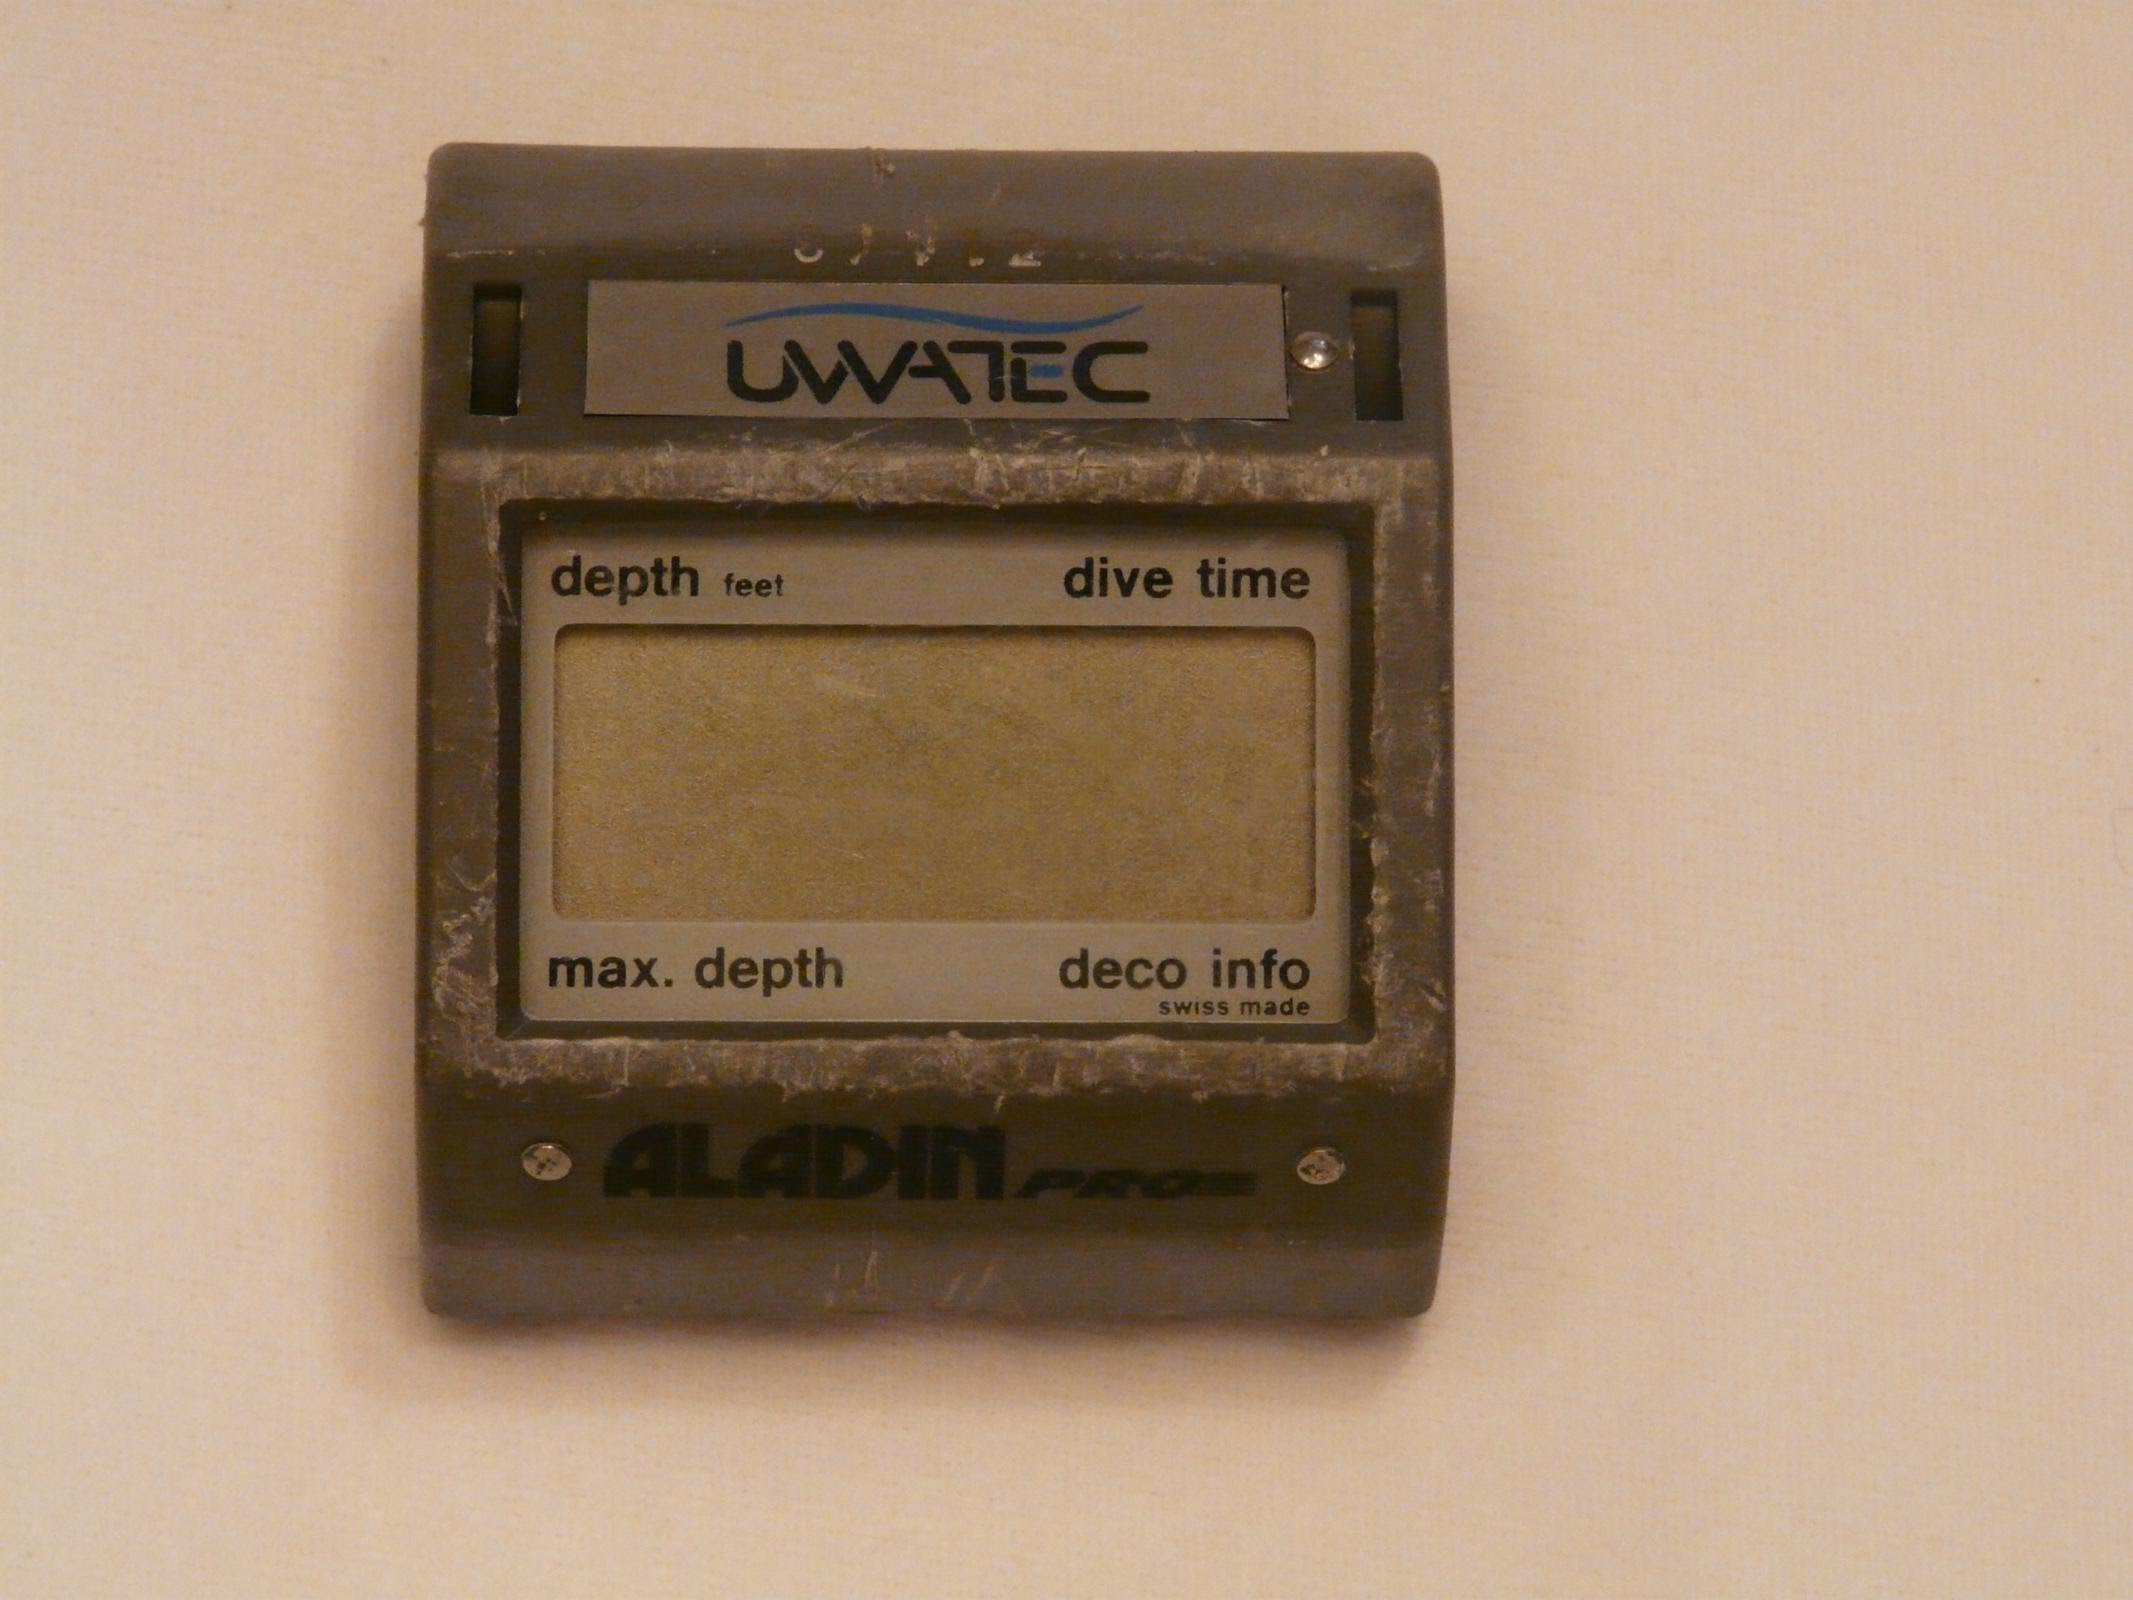 Uwatec aladin pro swiss made dive computer nitrox ebay - Aladin pro dive computer ...